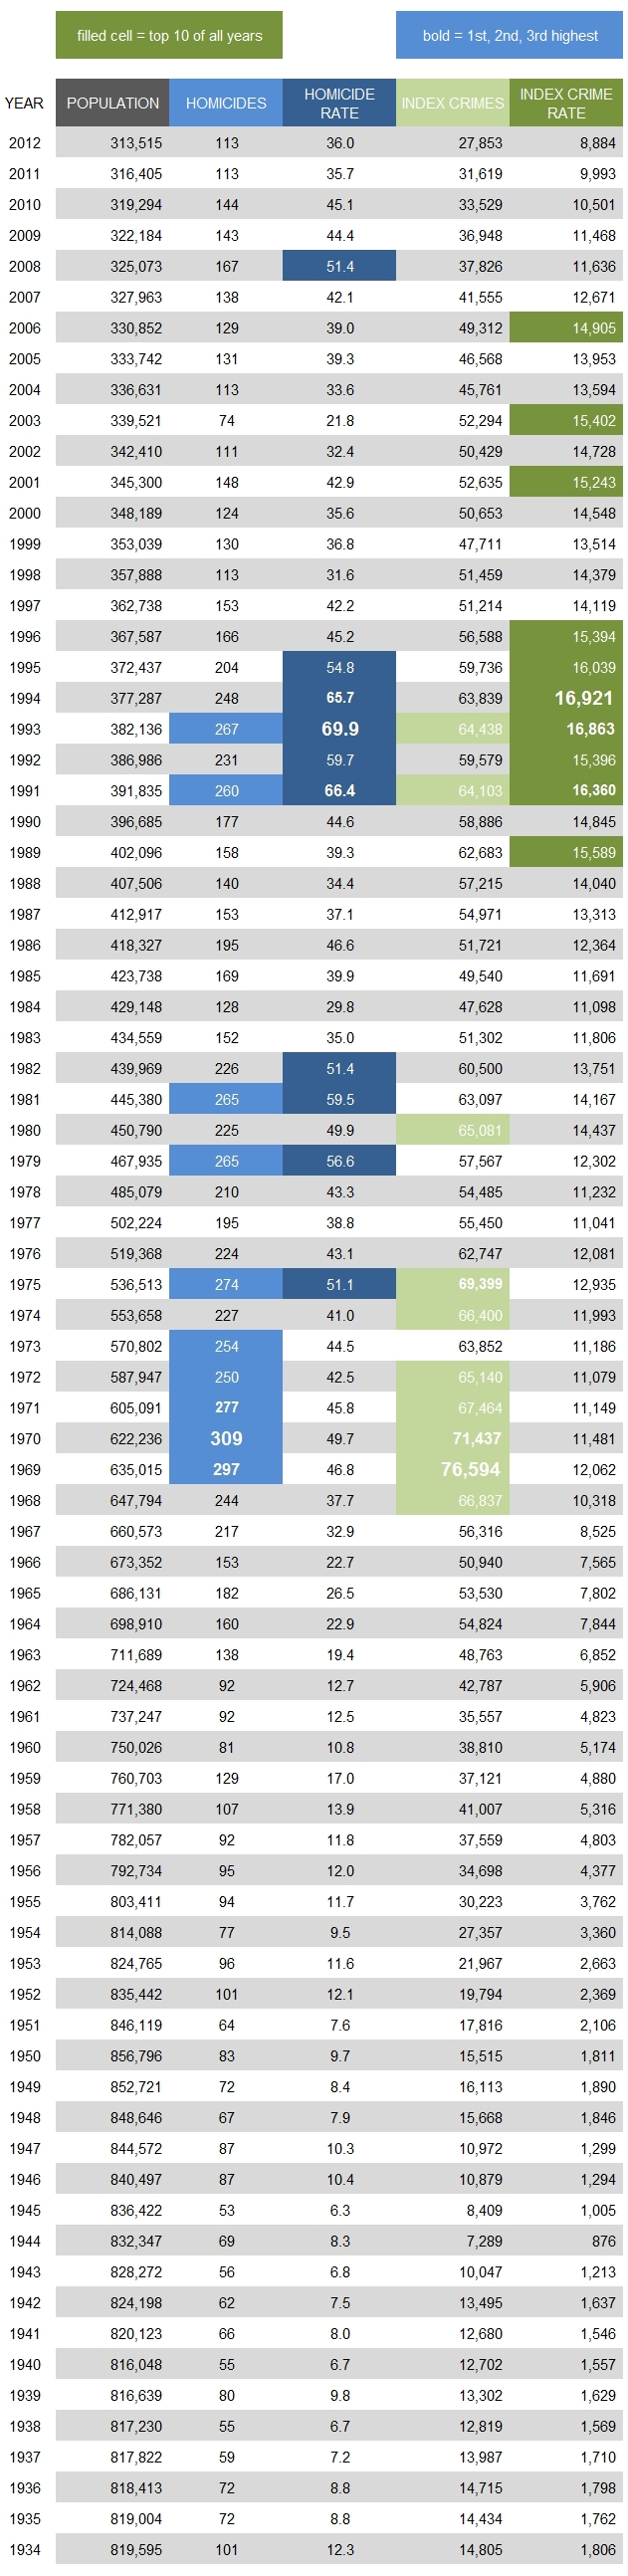 City of St. Louis Homicide and Index Crimes 1934-2012